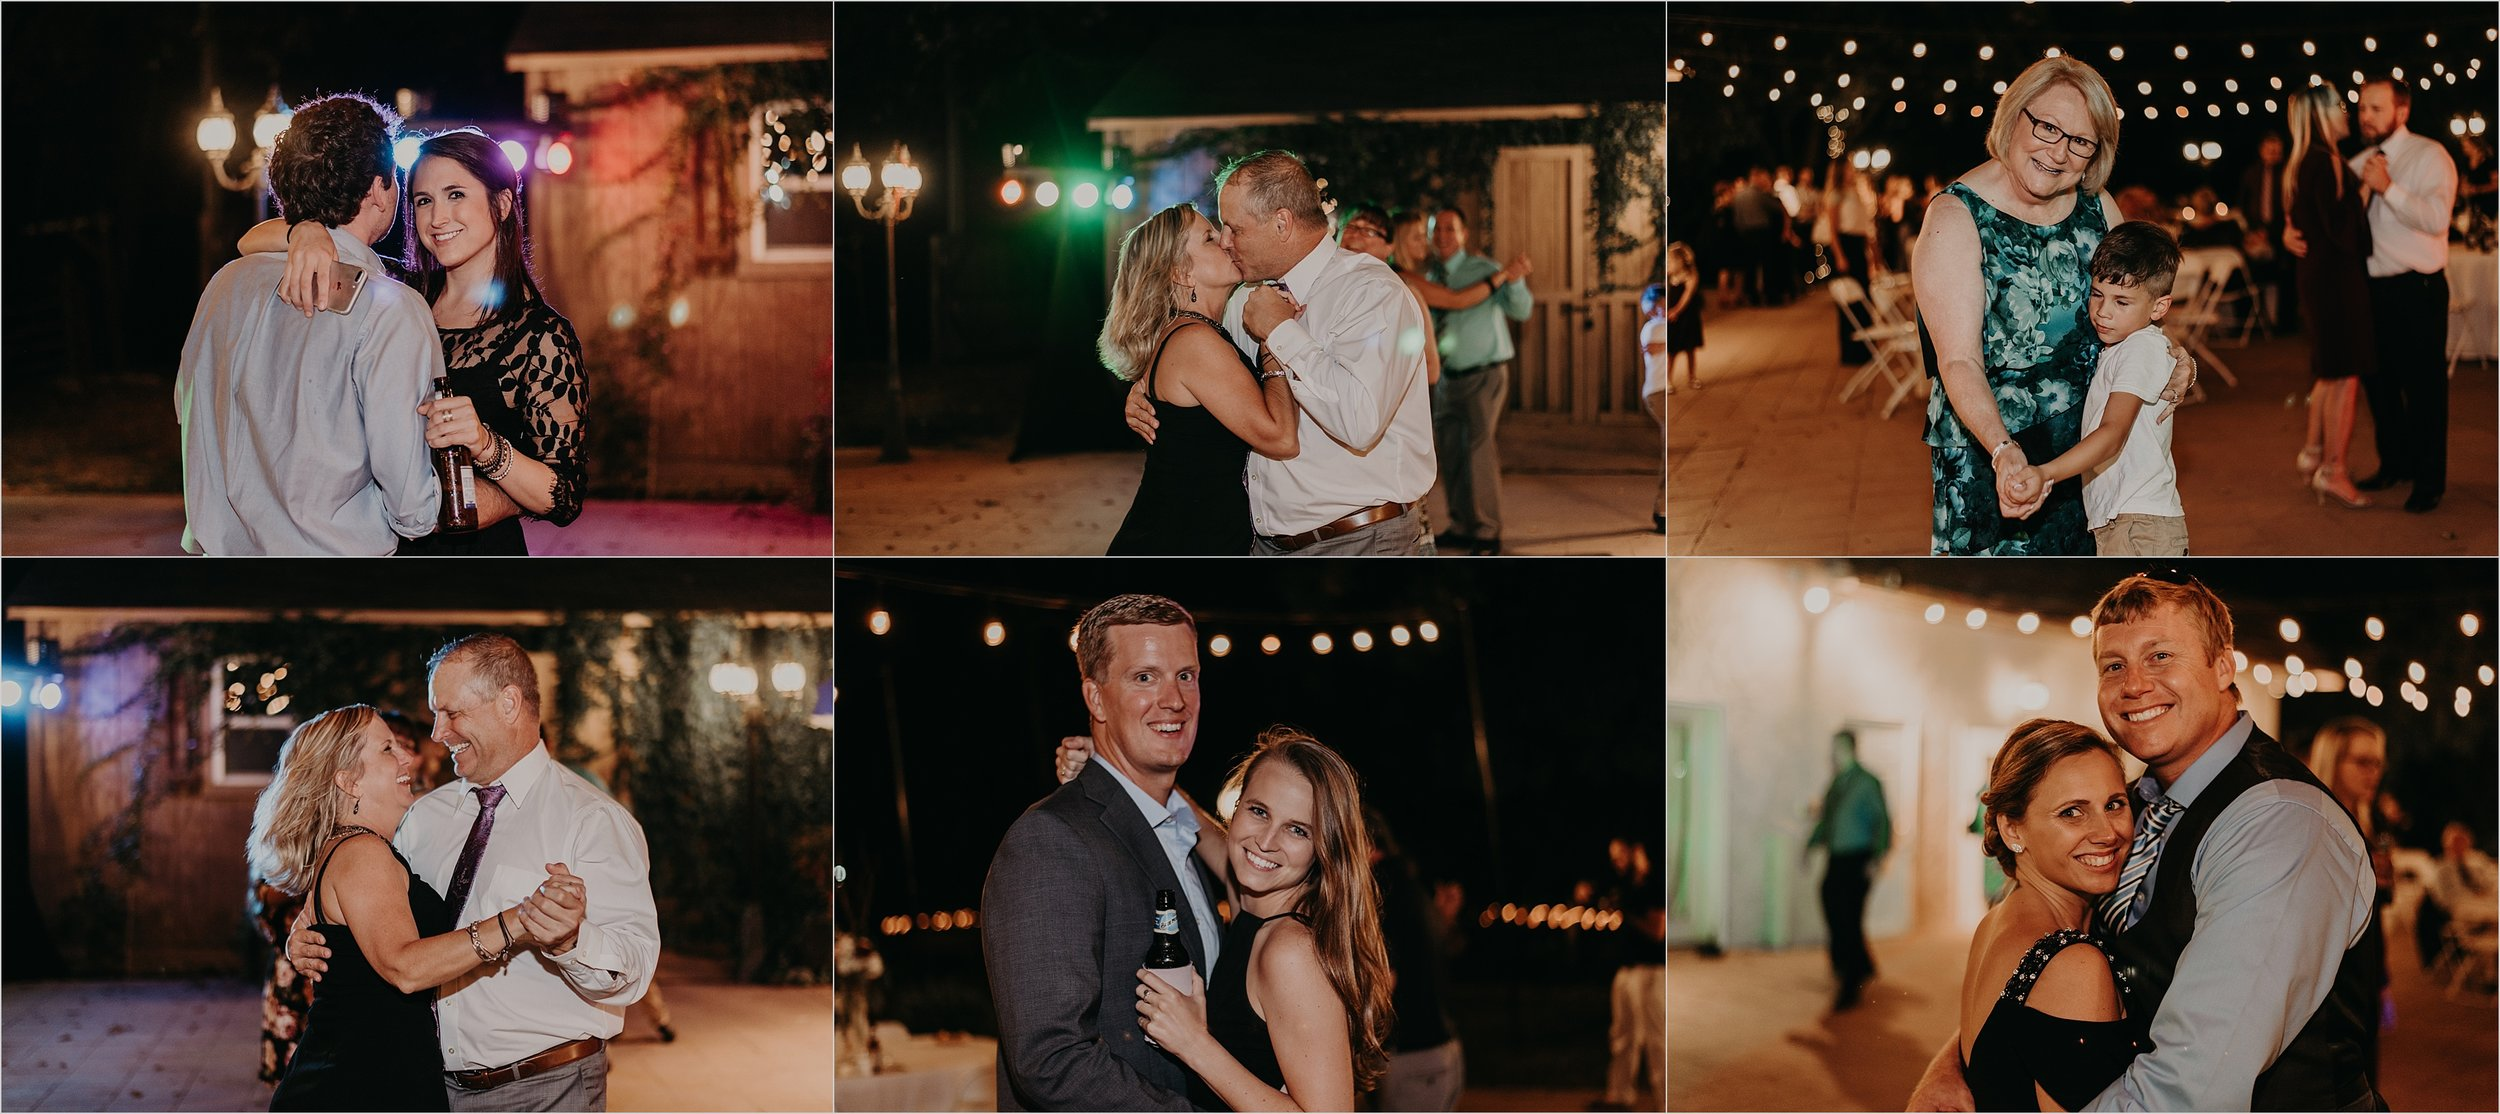 Guests dance during wedding reception at Tennessee Riverplace